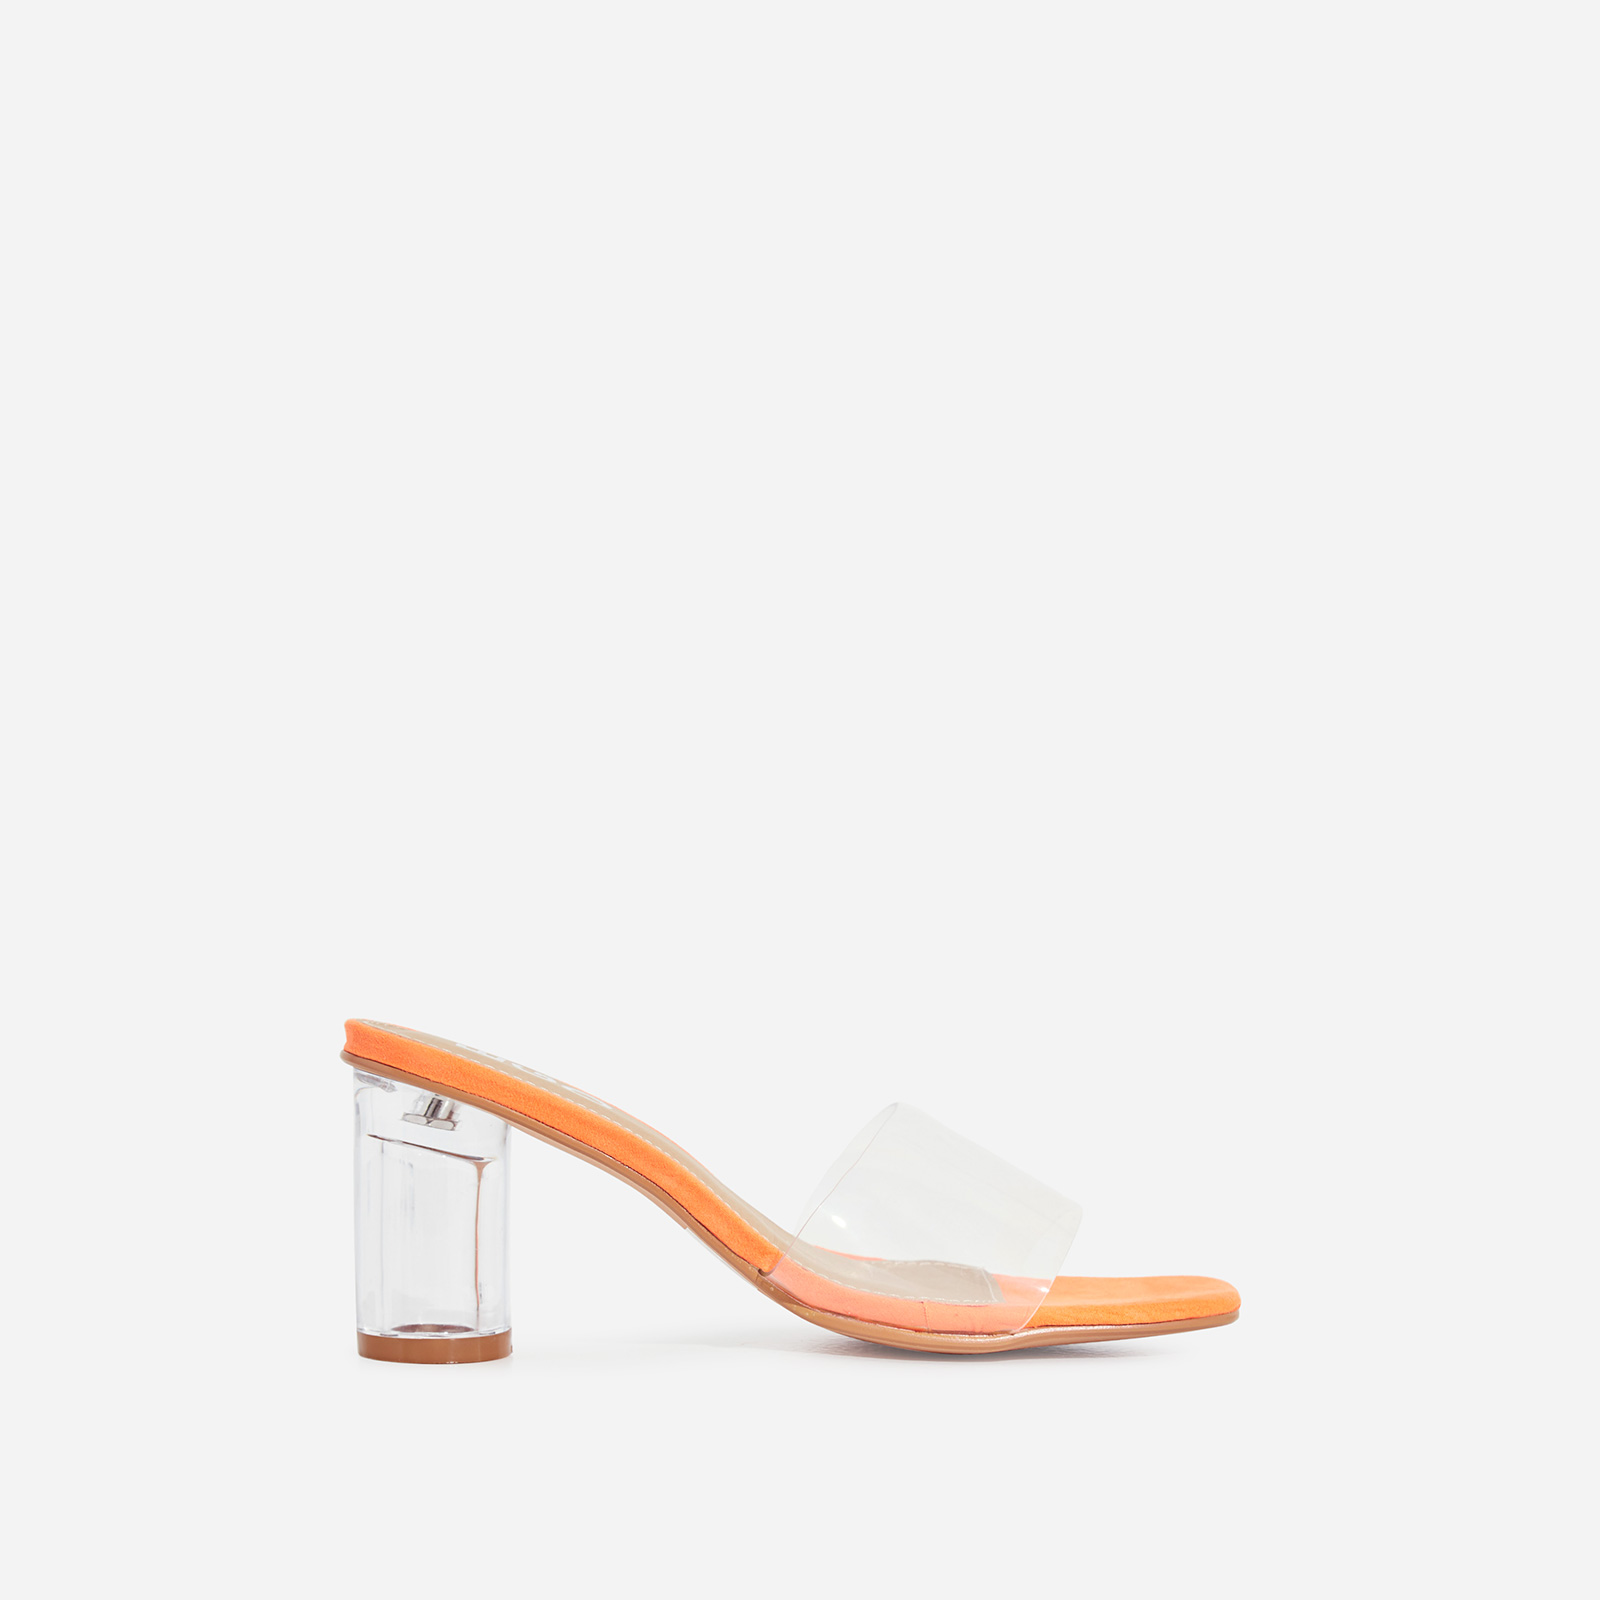 Alva Perspex Square Peep Toe Midi Block Heel Mule In Orange Faux Suede